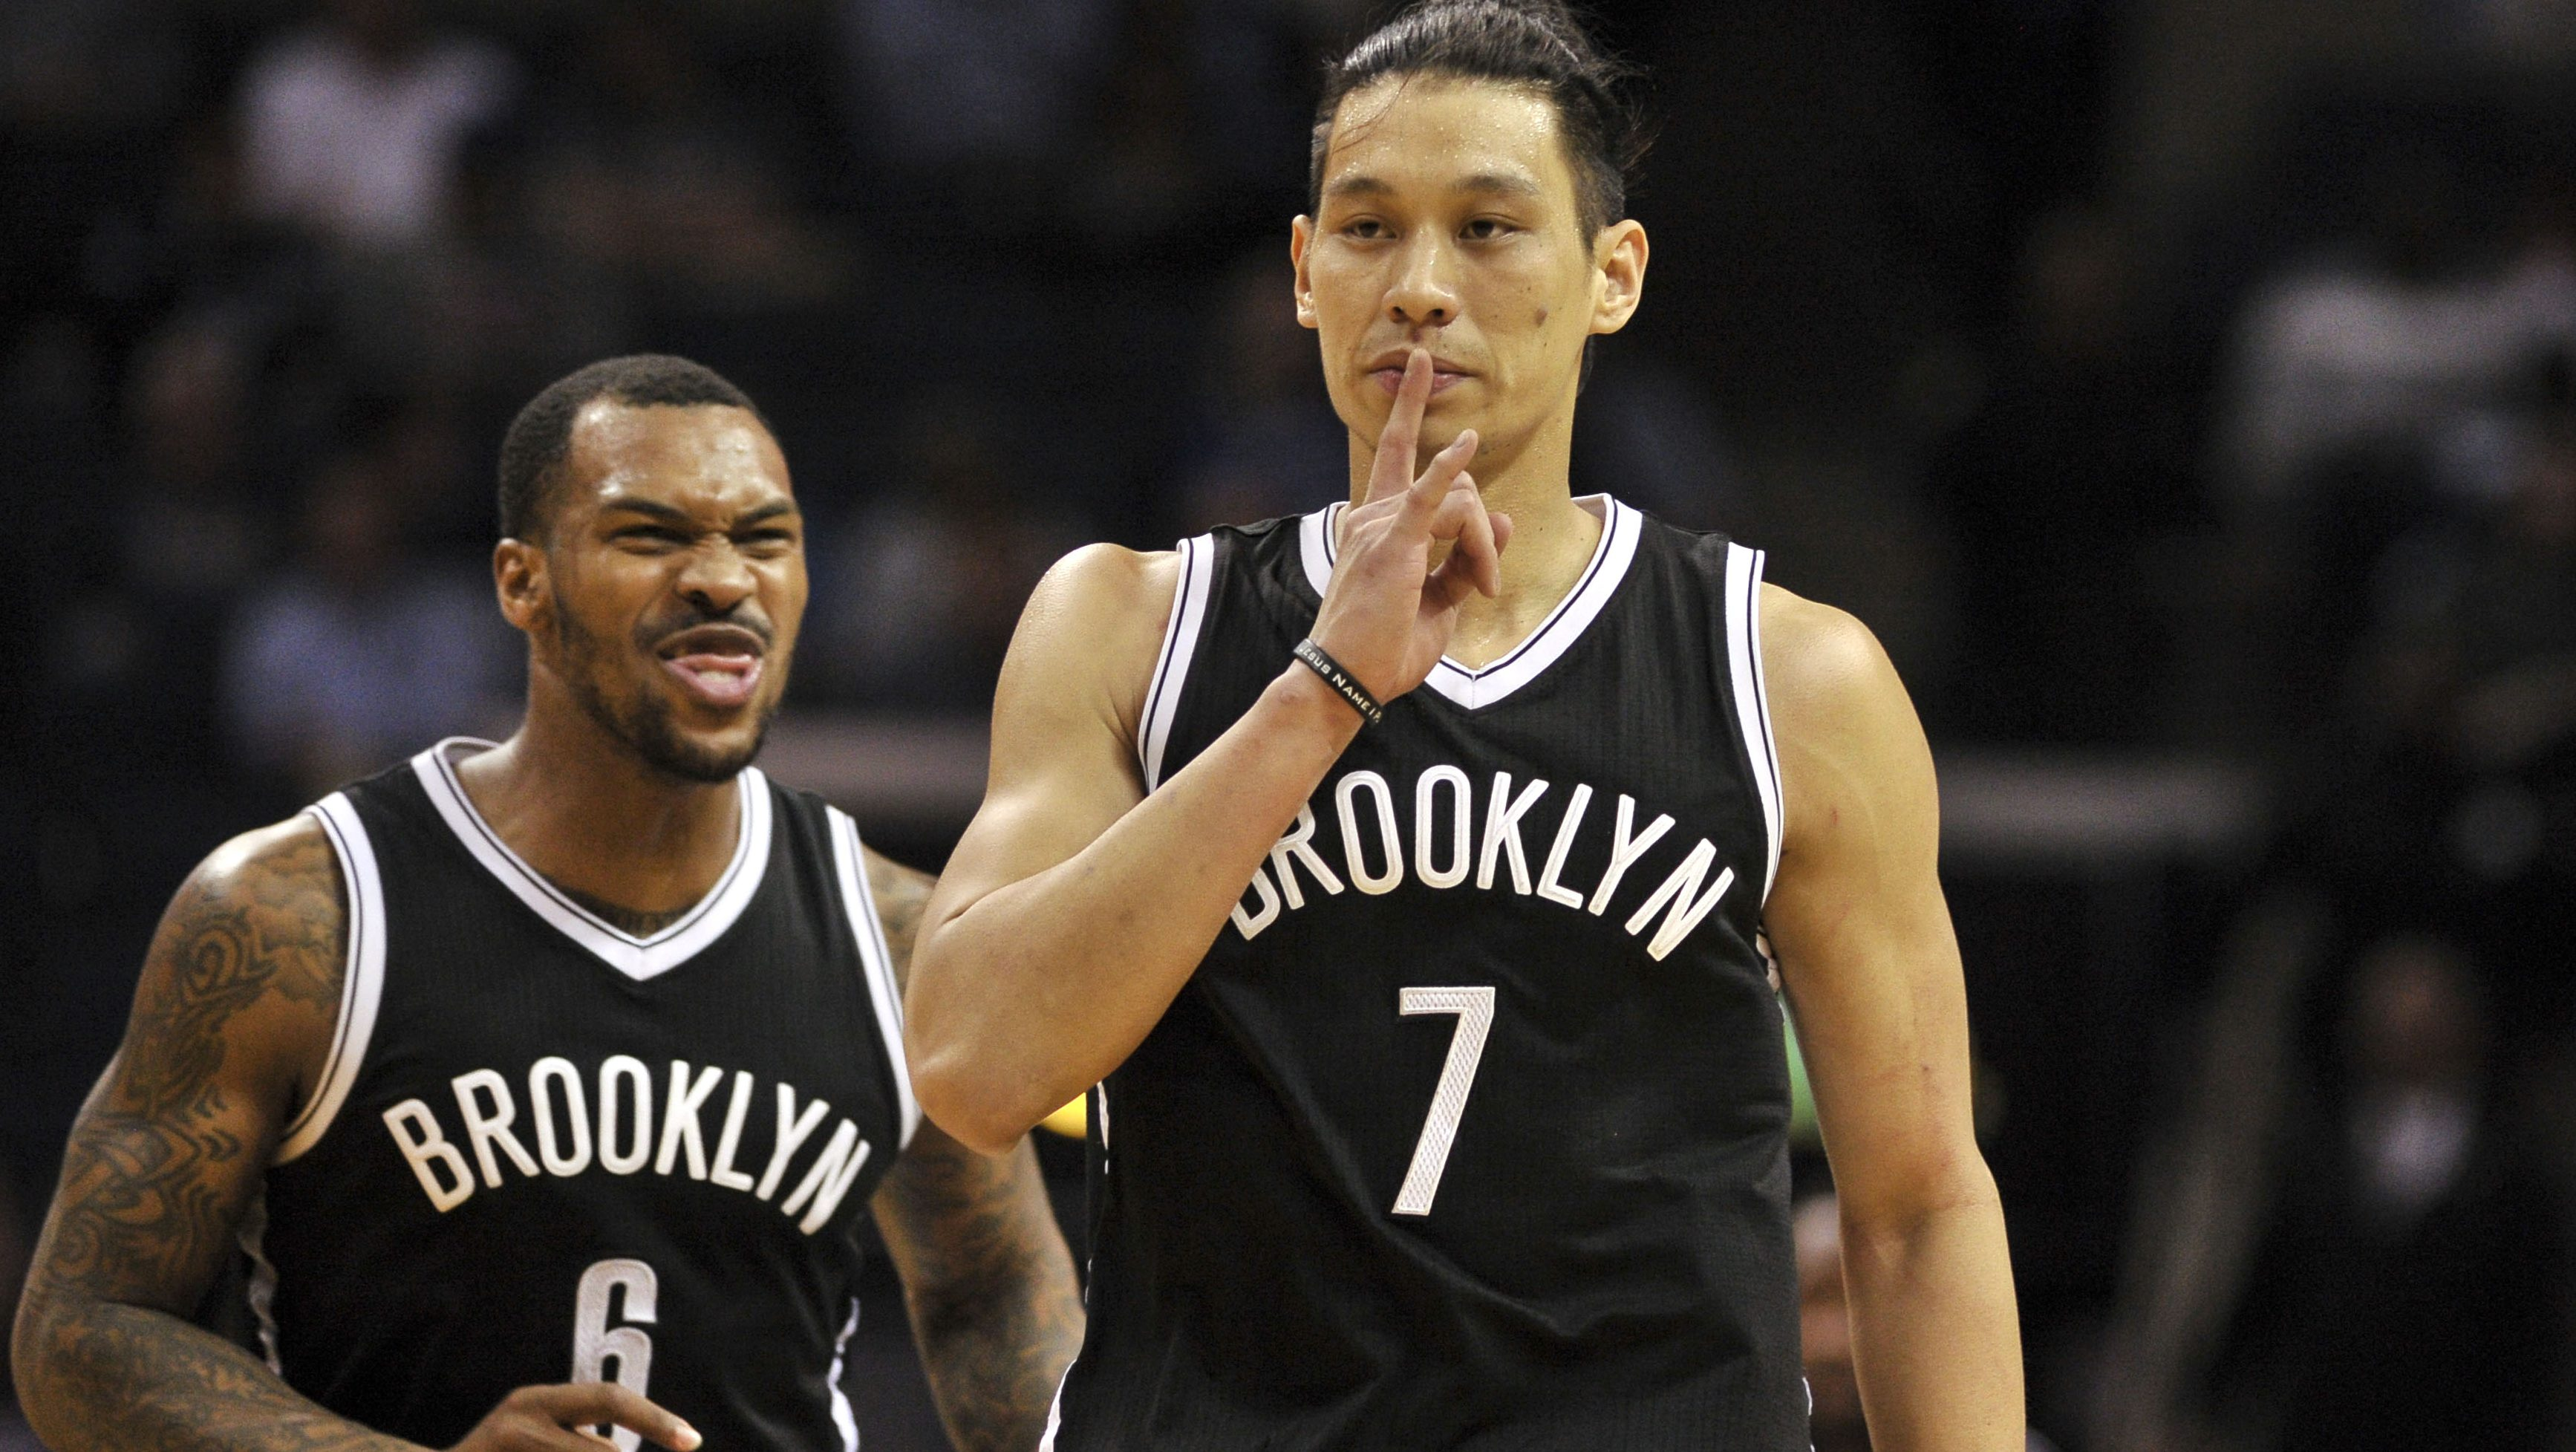 Mar 6, 2017; Memphis, TN, USA; Brooklyn Nets guard Jeremy Lin (7) and guard Sean Kilpatrick (6) celebrate during the second half against the Memphis Grizzlies at FedExForum. Brooklyn defeated Memphis 122-109. Mandatory Credit: Justin Ford-USA TODAY Sports - RTS11Q54